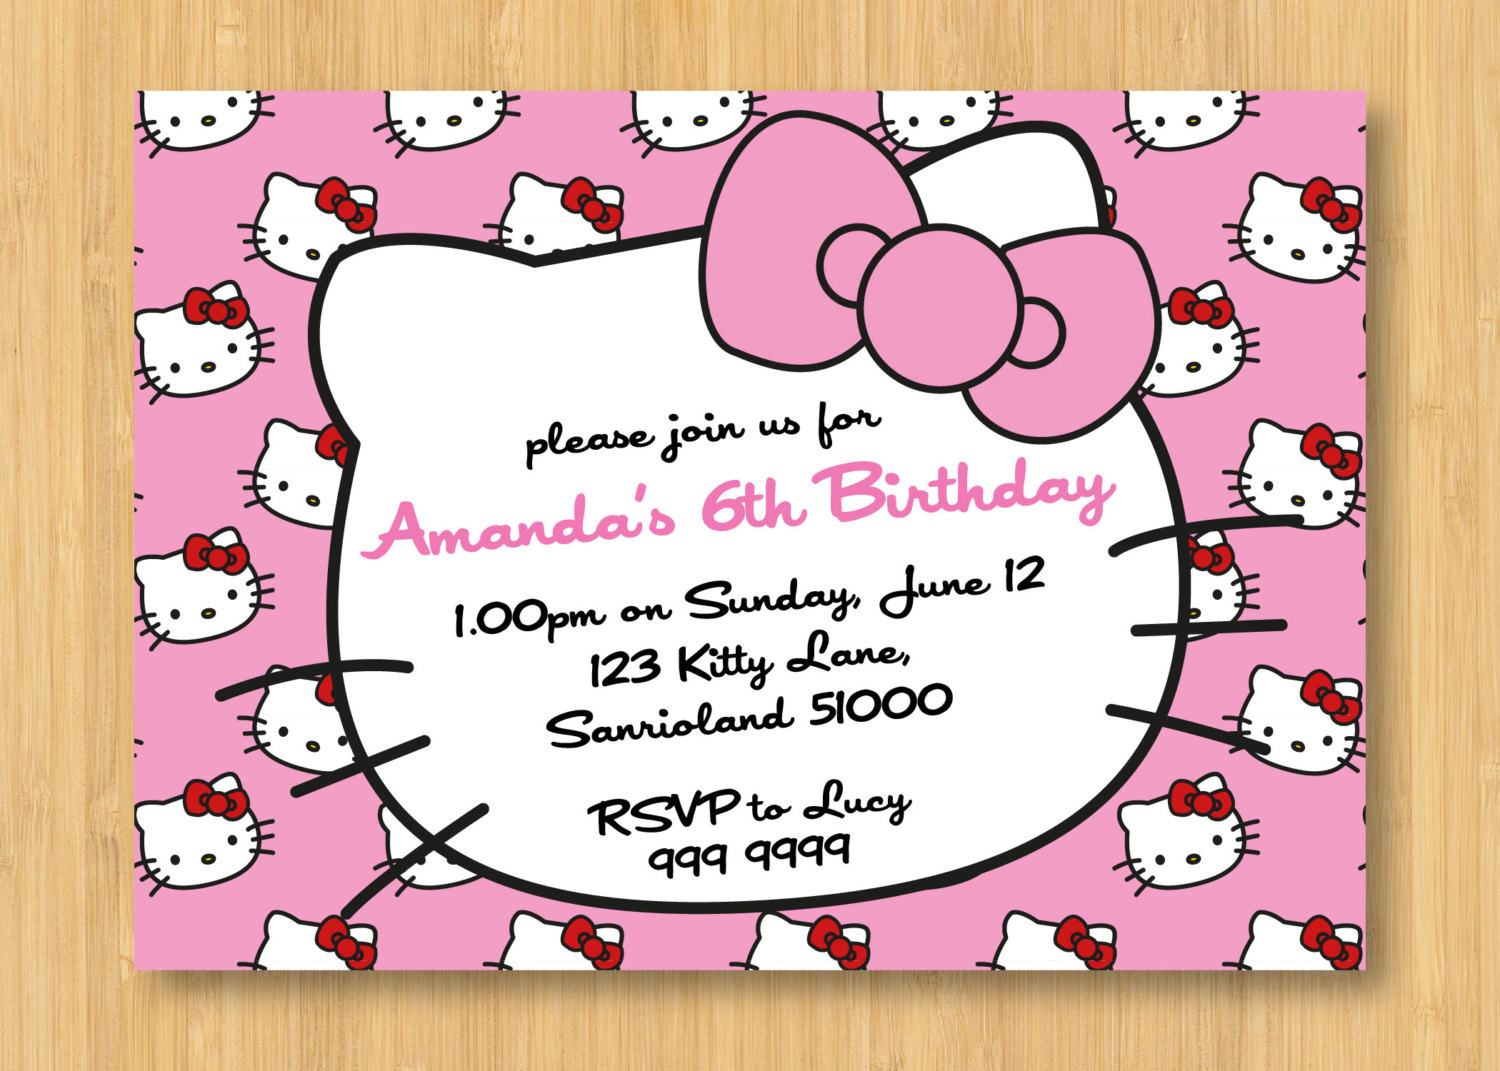 hello kitty birthday invitation layout ; hello-kitty-birthday-invitations-for-your-extraordinary-Birthday-Invitation-Templates-associated-with-beautiful-sight-using-a-exceptional-design-11